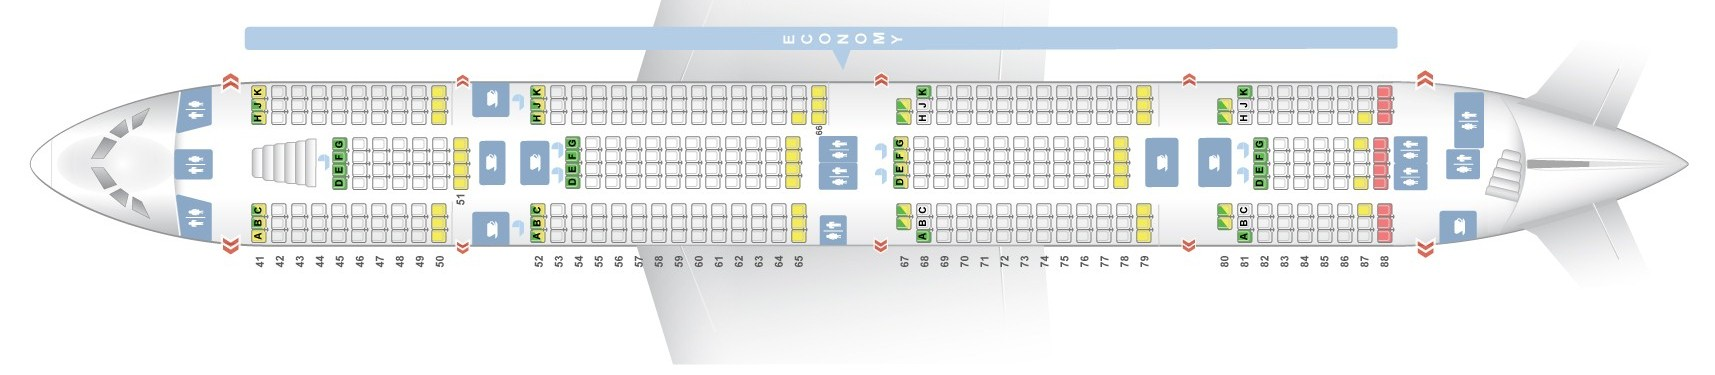 Seat map Airbus A380-800 Emirates. Best seats in the plane